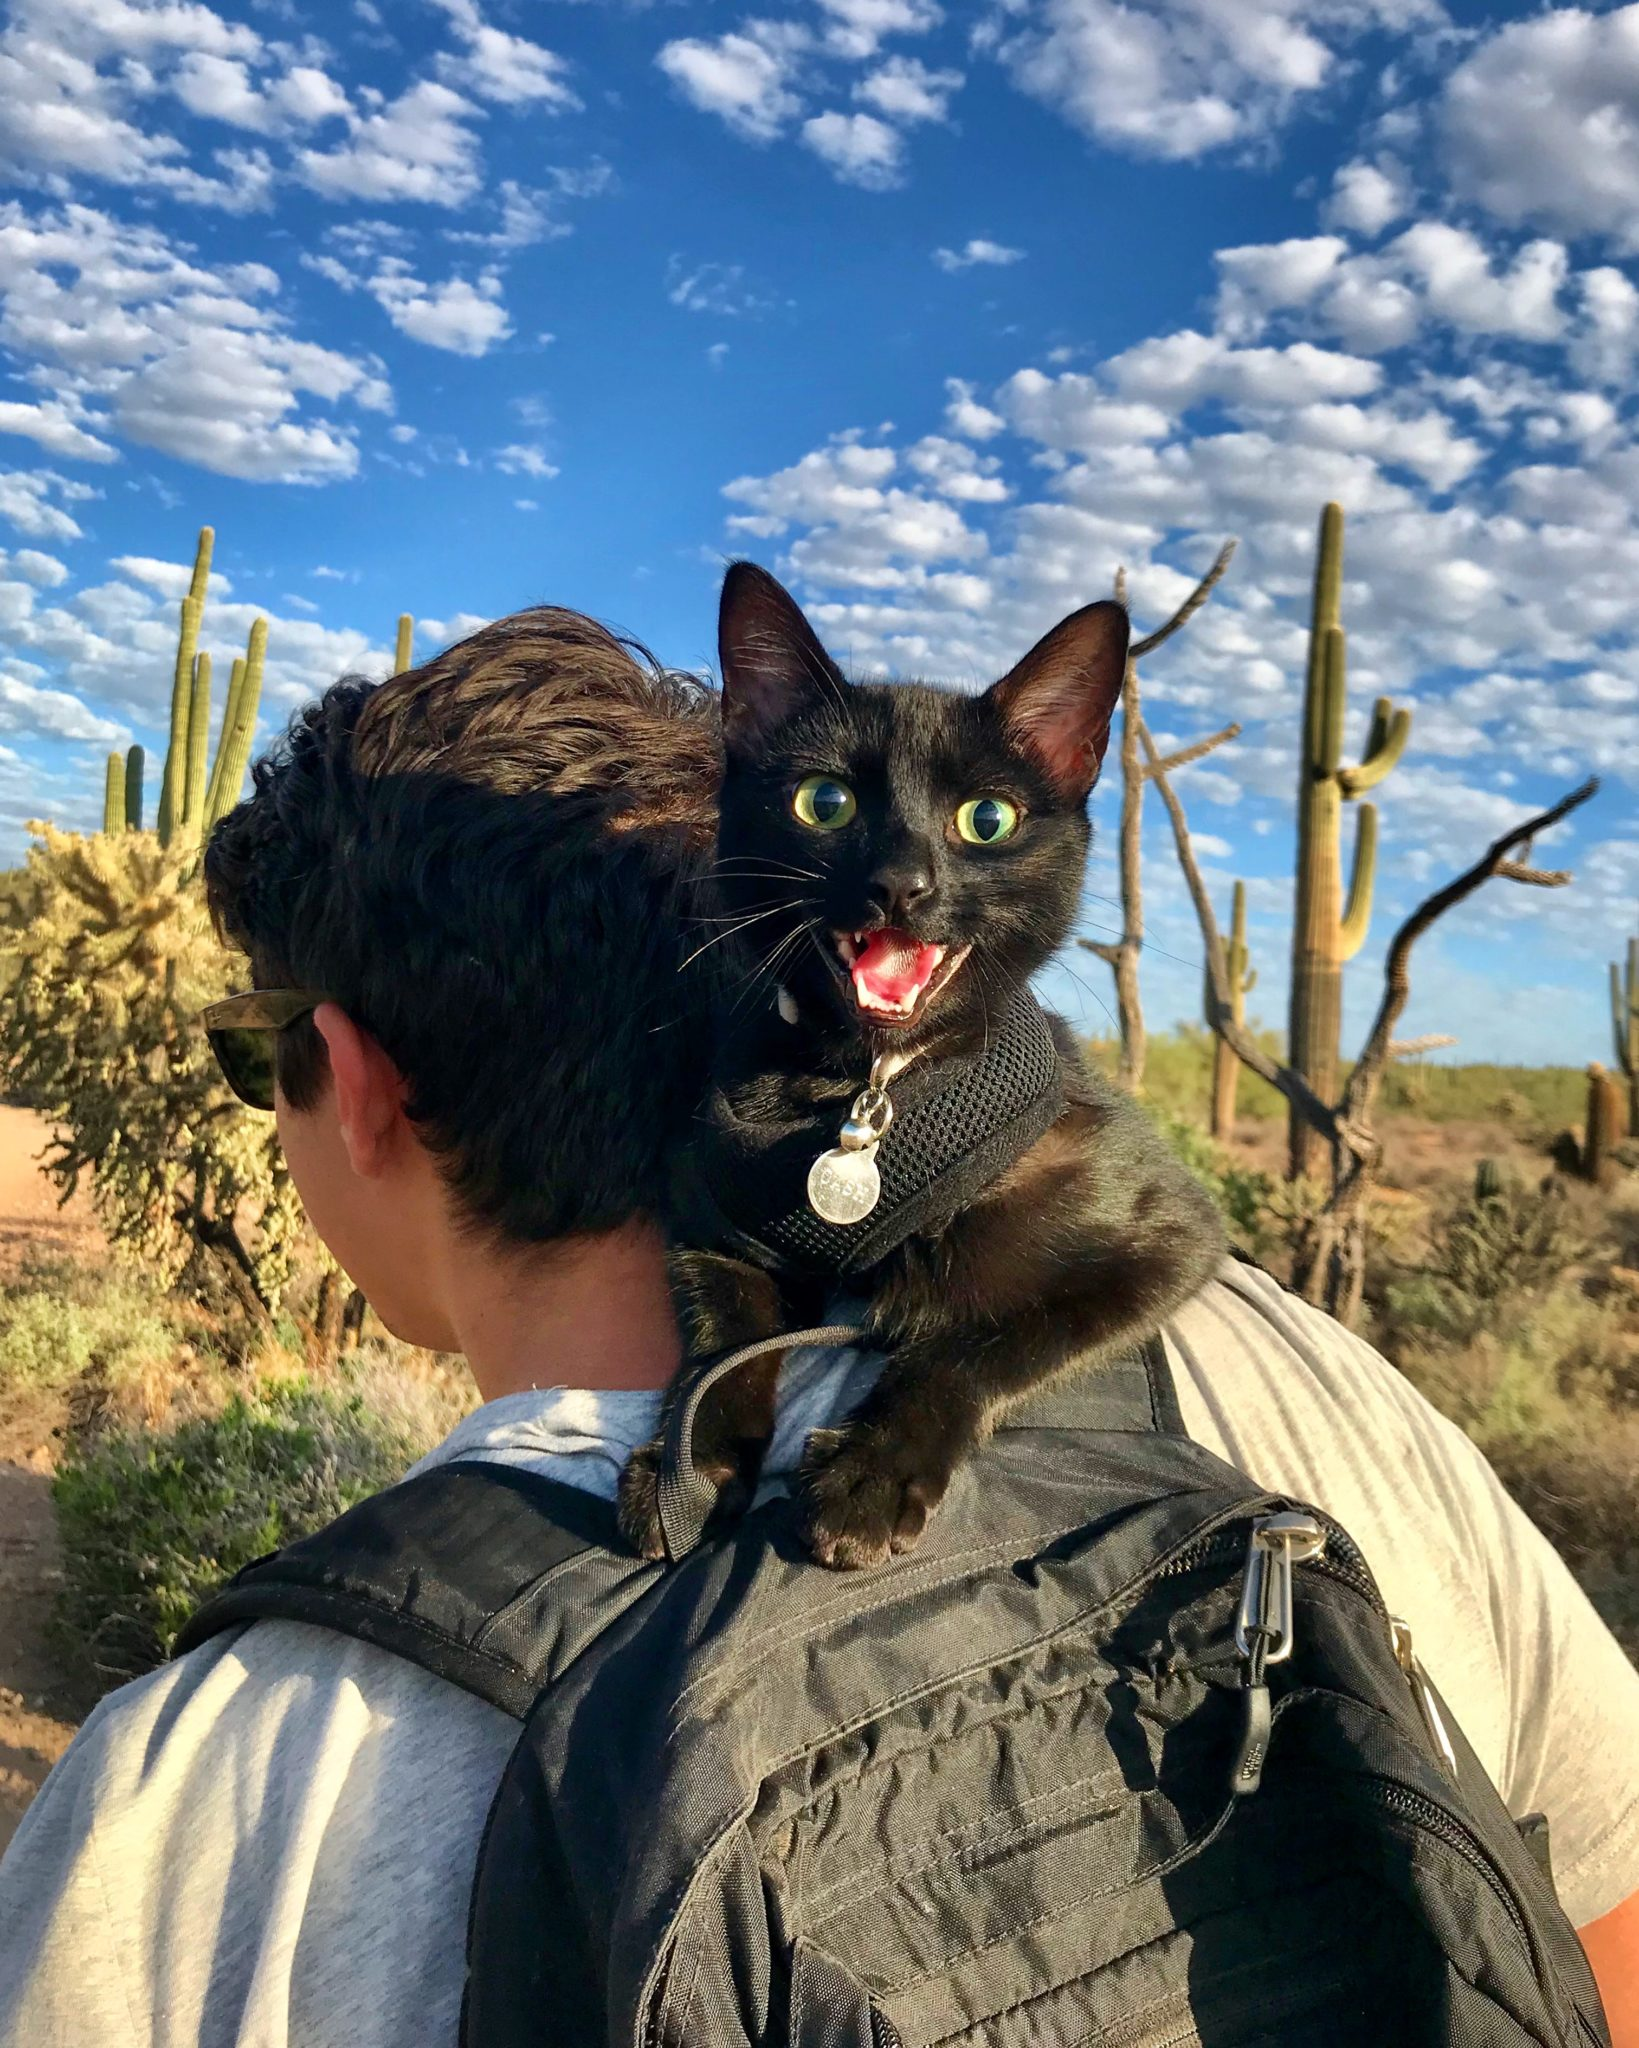 Cash the adventure cat meows on owner's shoulder